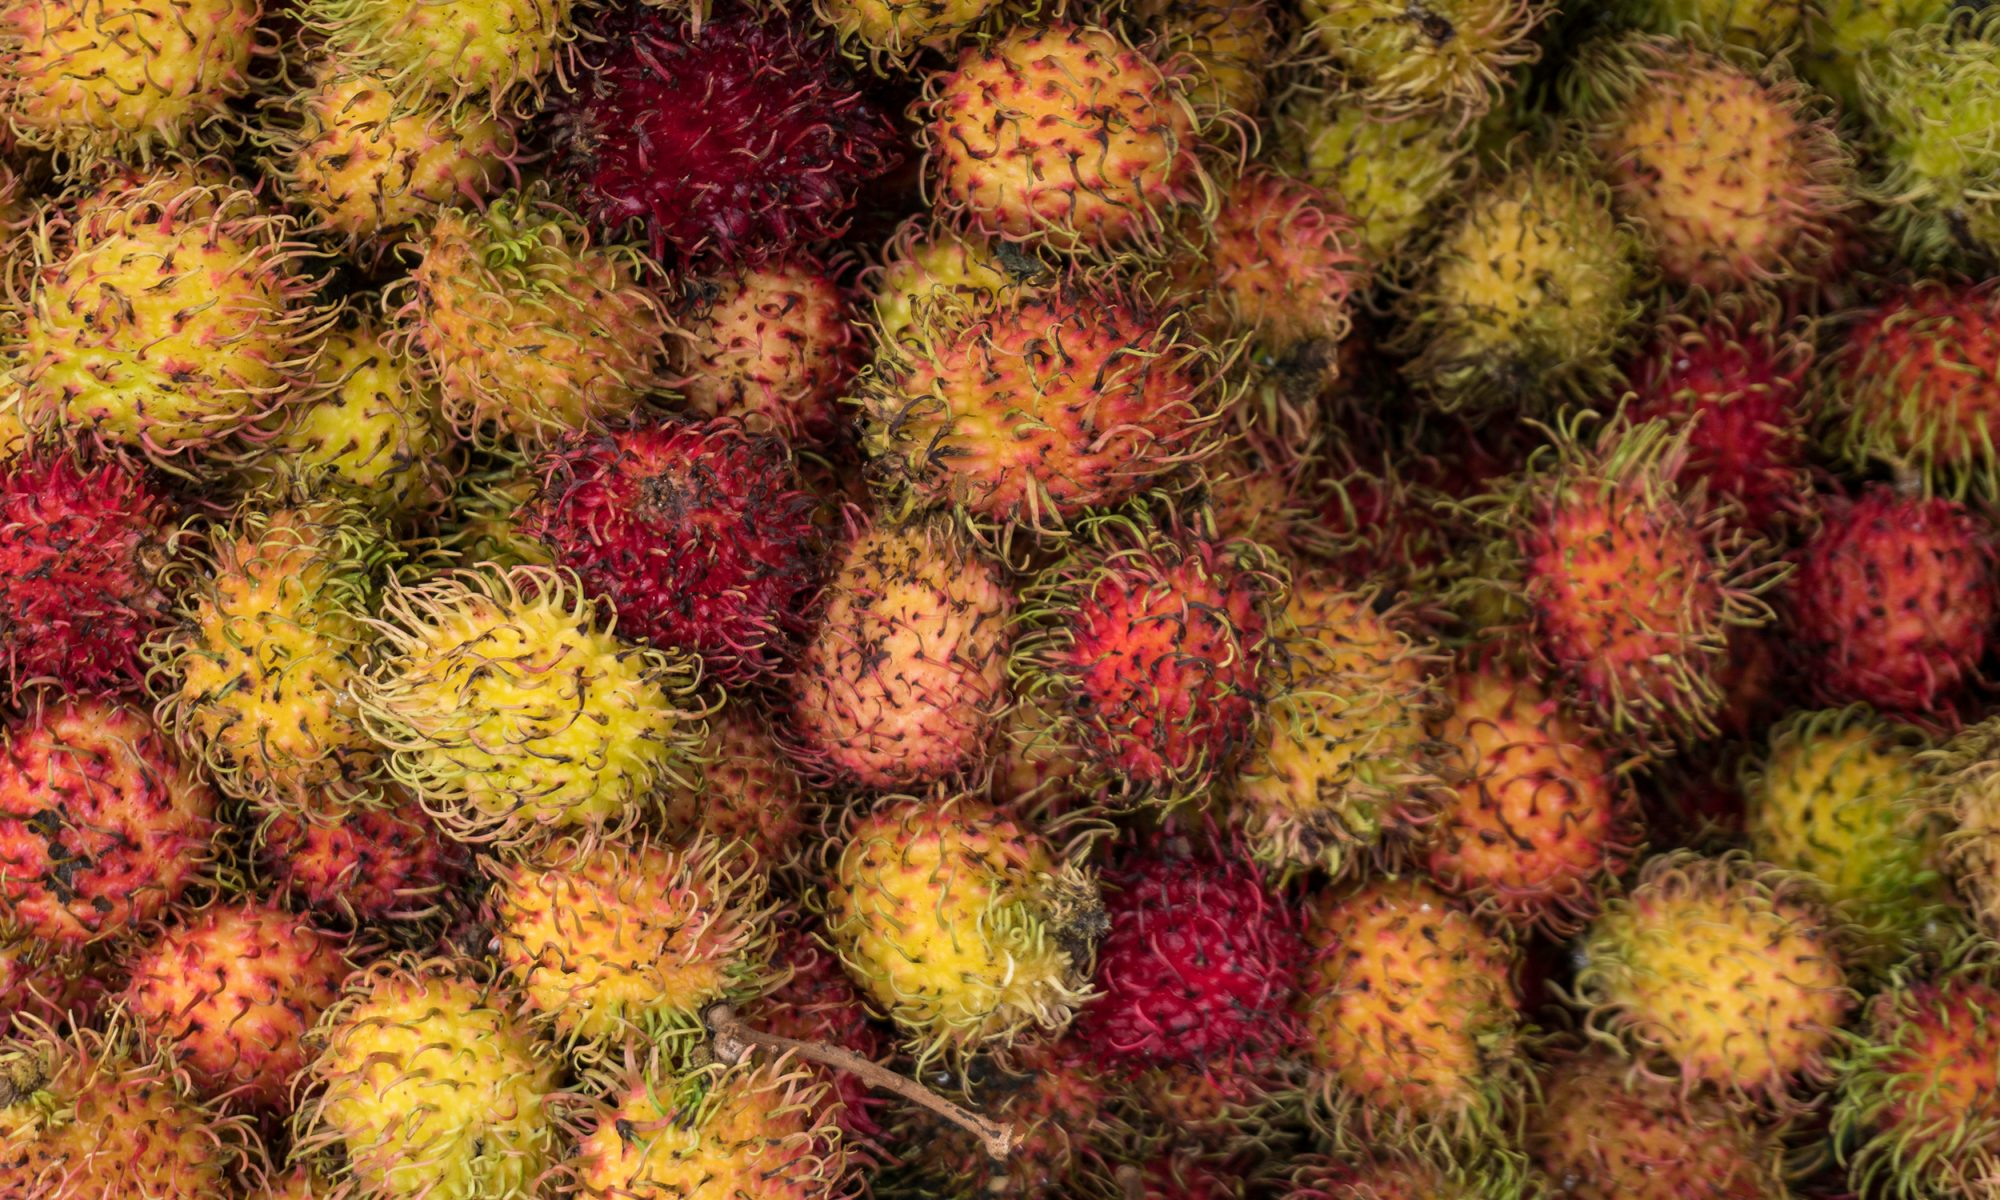 EC: Exotic Fruit Is All the Rage for Rosh Hashanah